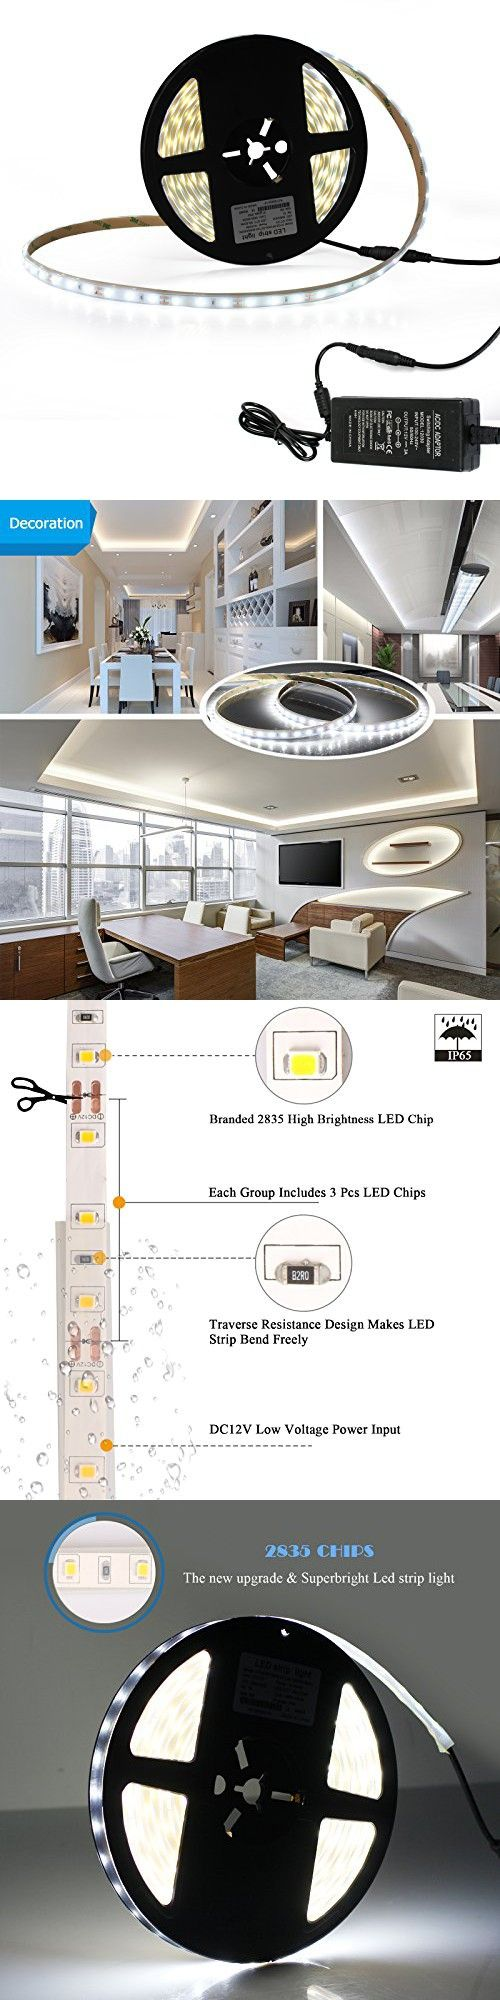 56b5855aab7b775febb4606a3dc0f331 best 25 led tape ideas on pinterest led tape light, strip  at bakdesigns.co